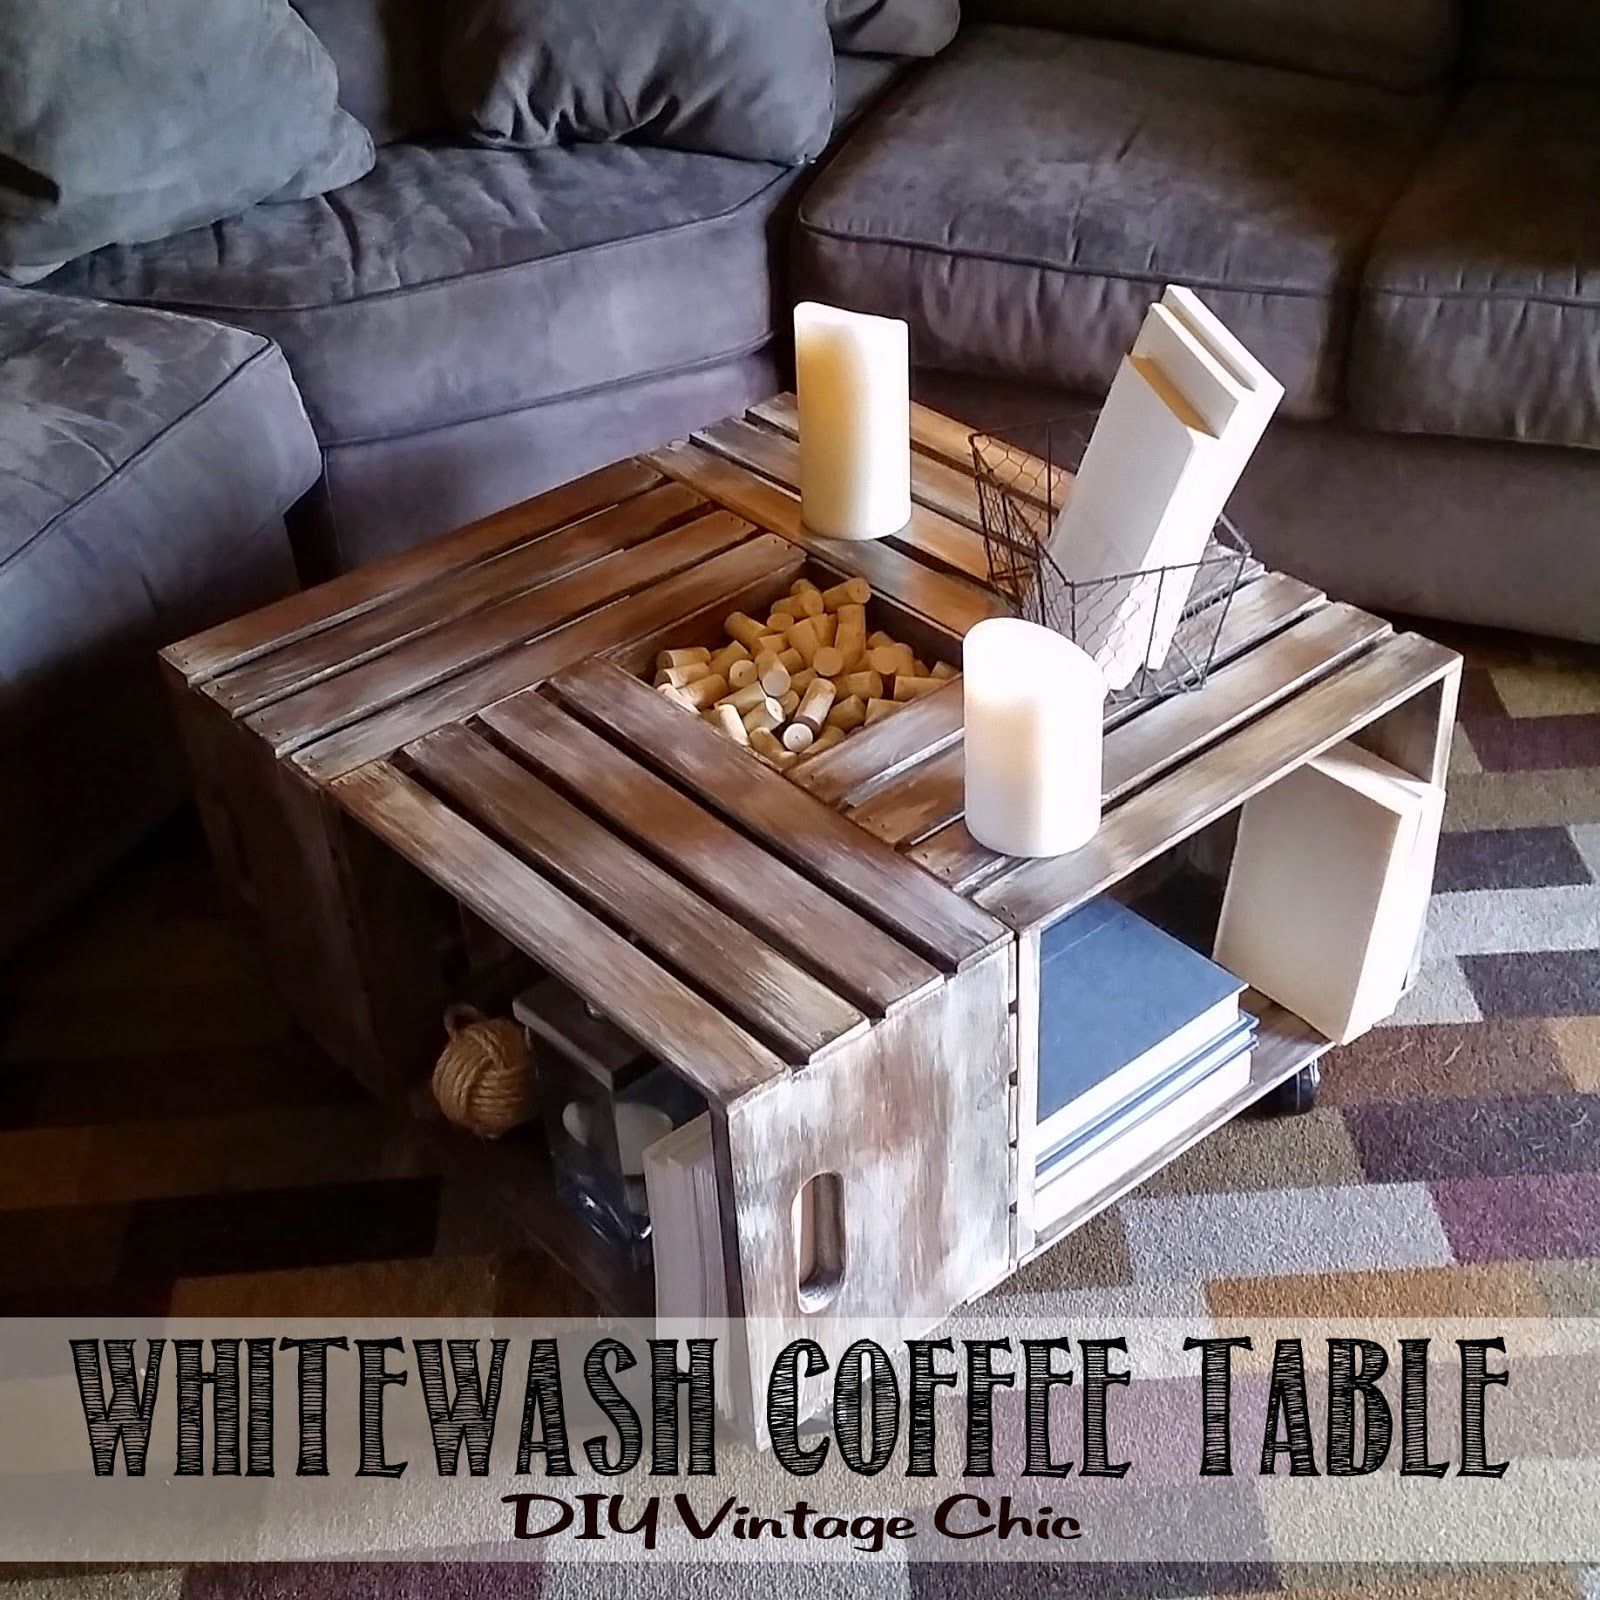 DIY Vintage Chic Vintage Wine Crate Coffee Table You can buy these